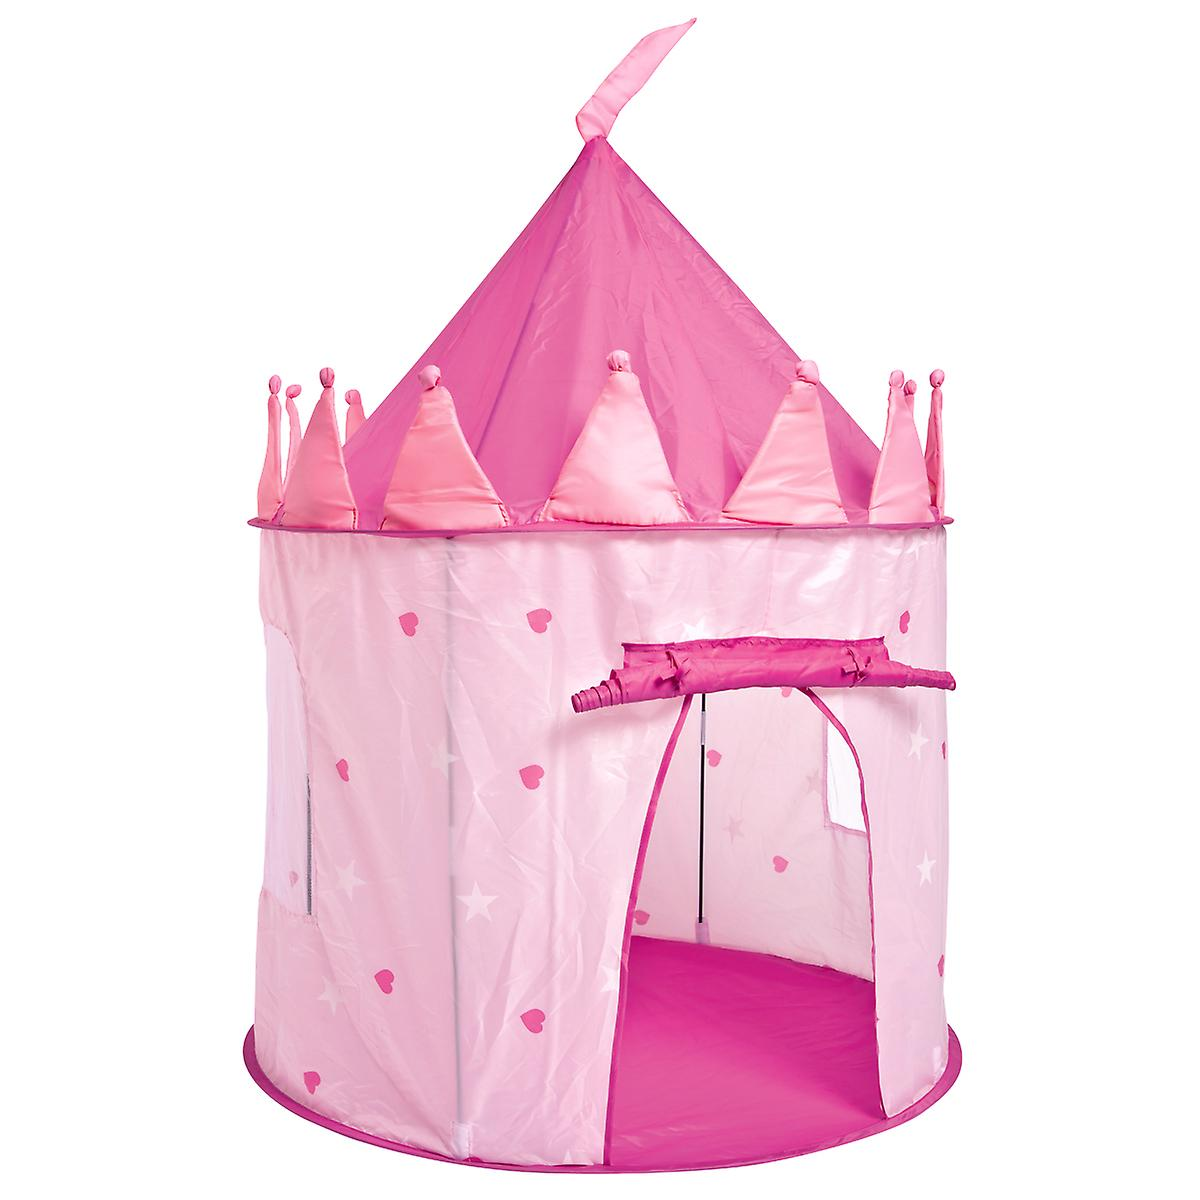 Children's Round Play Tent Indoor Outdoor - Princess and Knight Castle Available